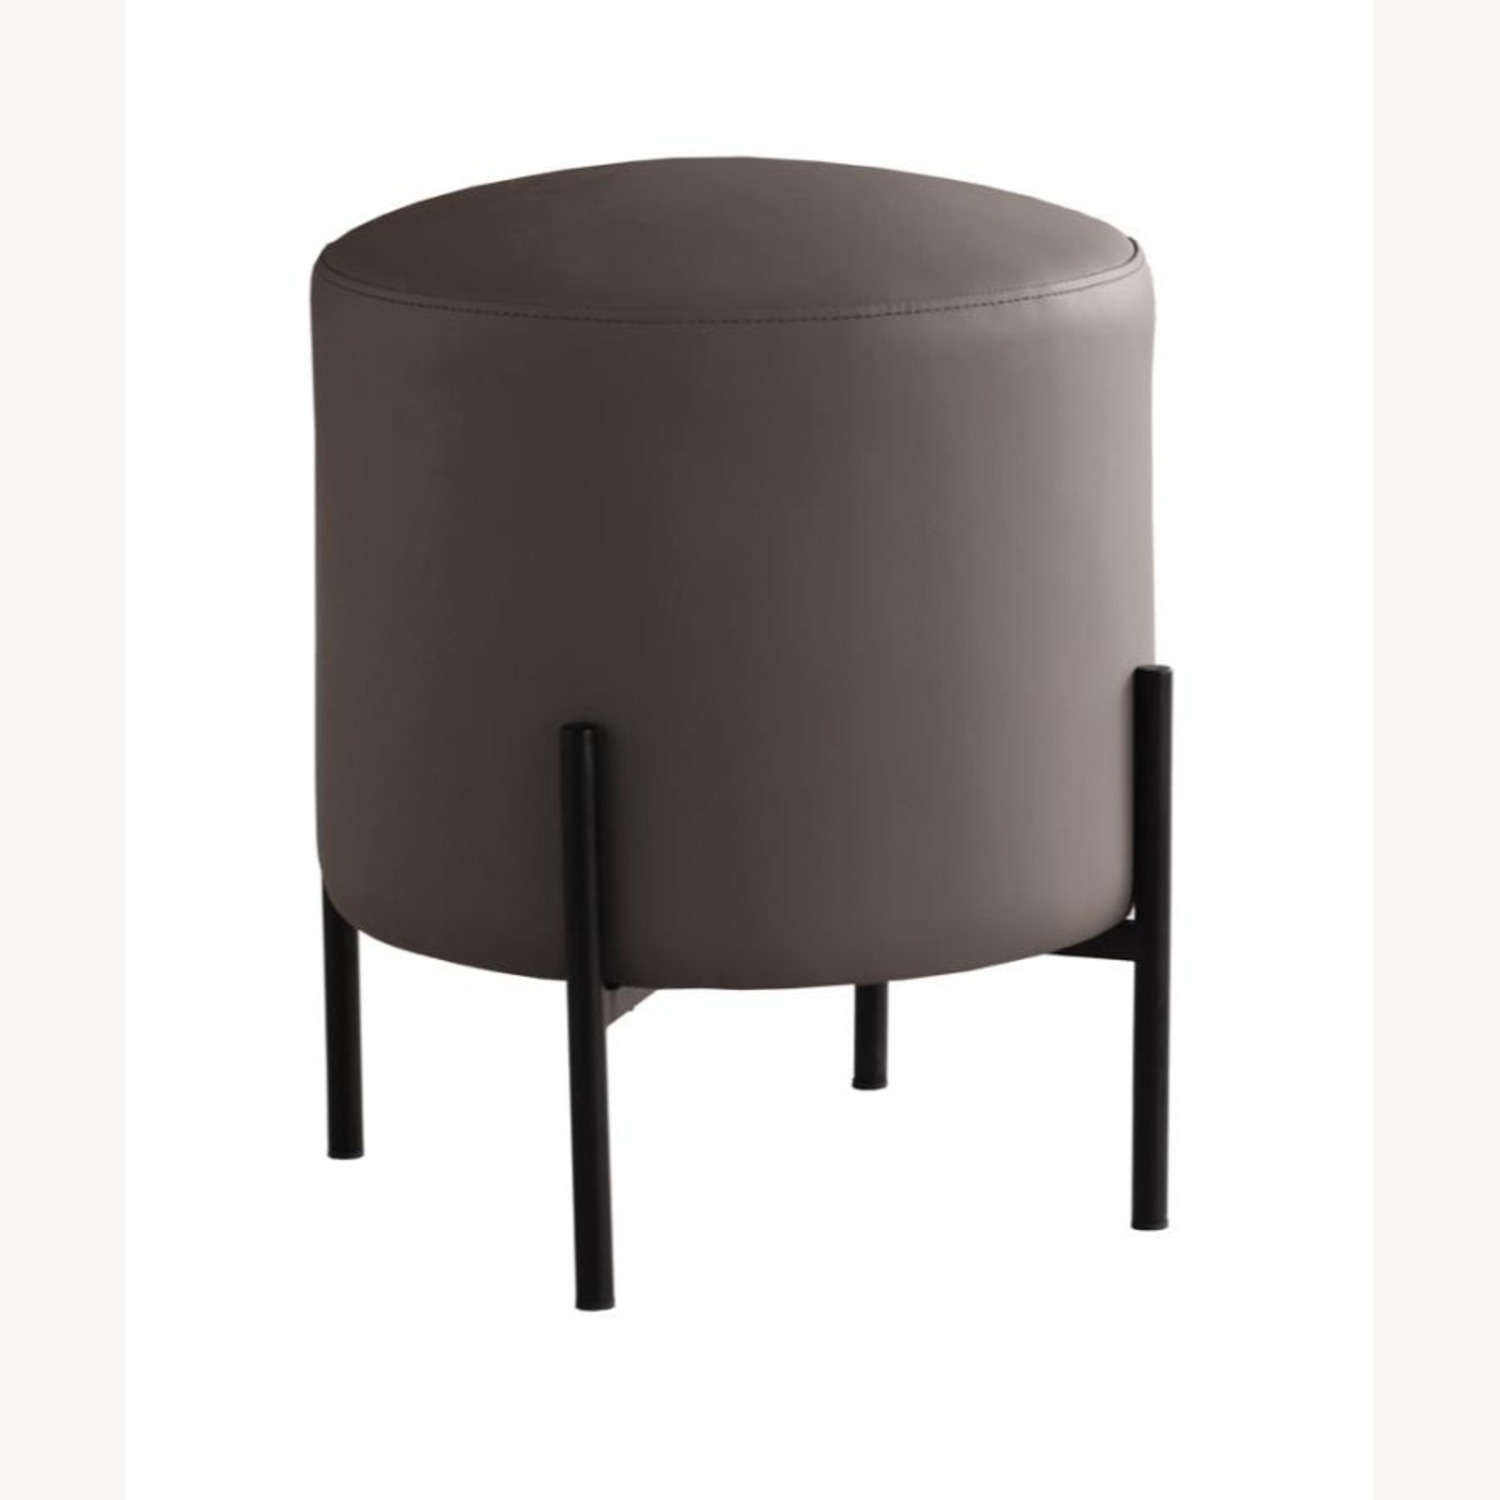 Ottoman In Light Grey & Leatherette Upholstery - image-1